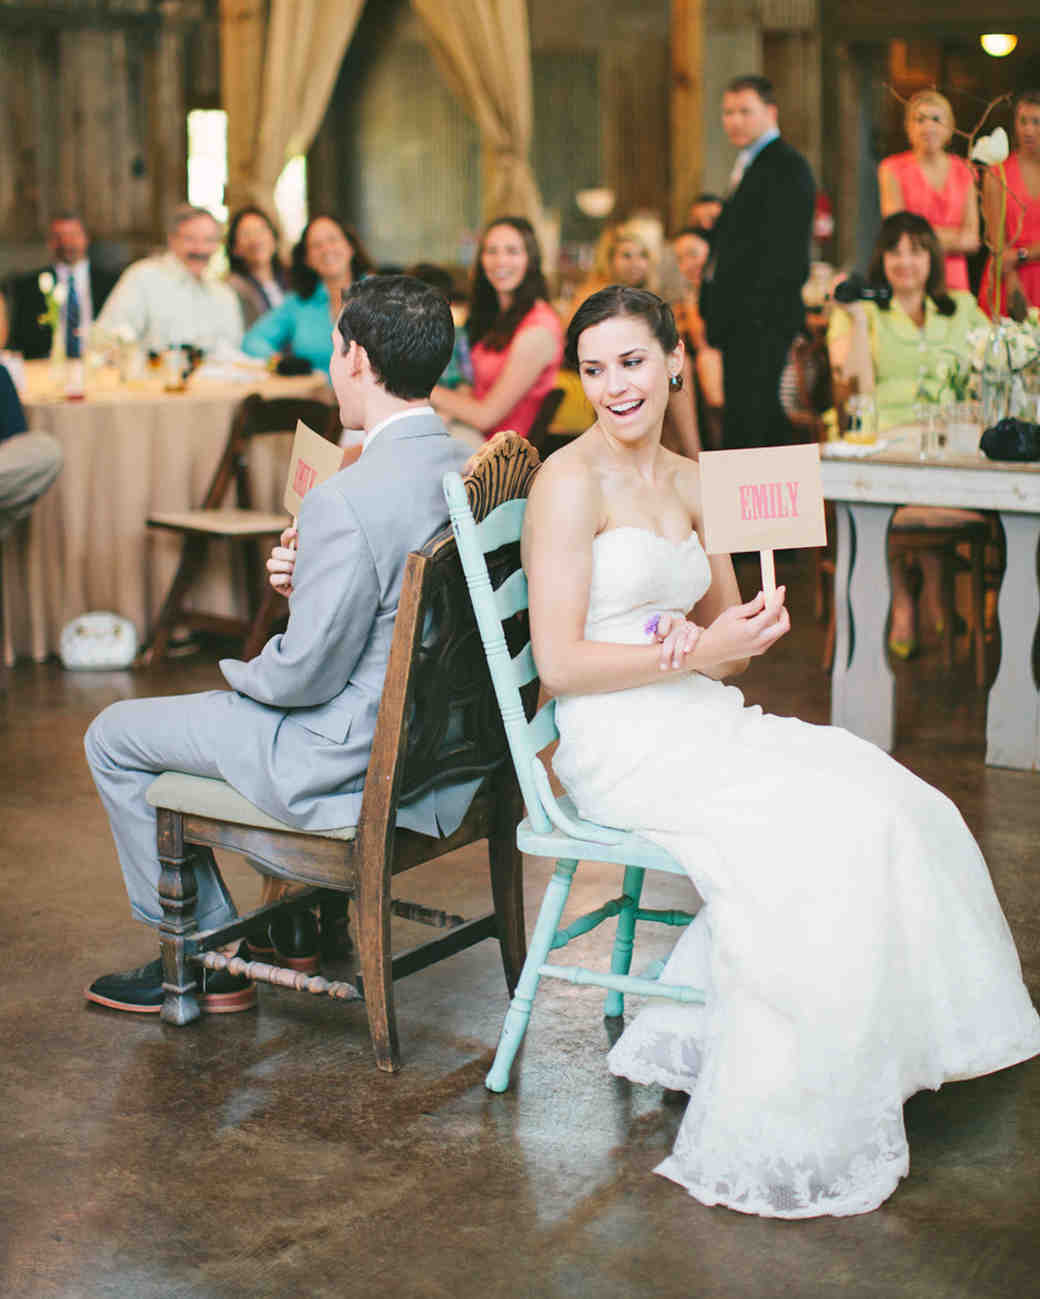 Wedding Games Ideas: Fun Wedding Games That'll Keep Guests Laughing